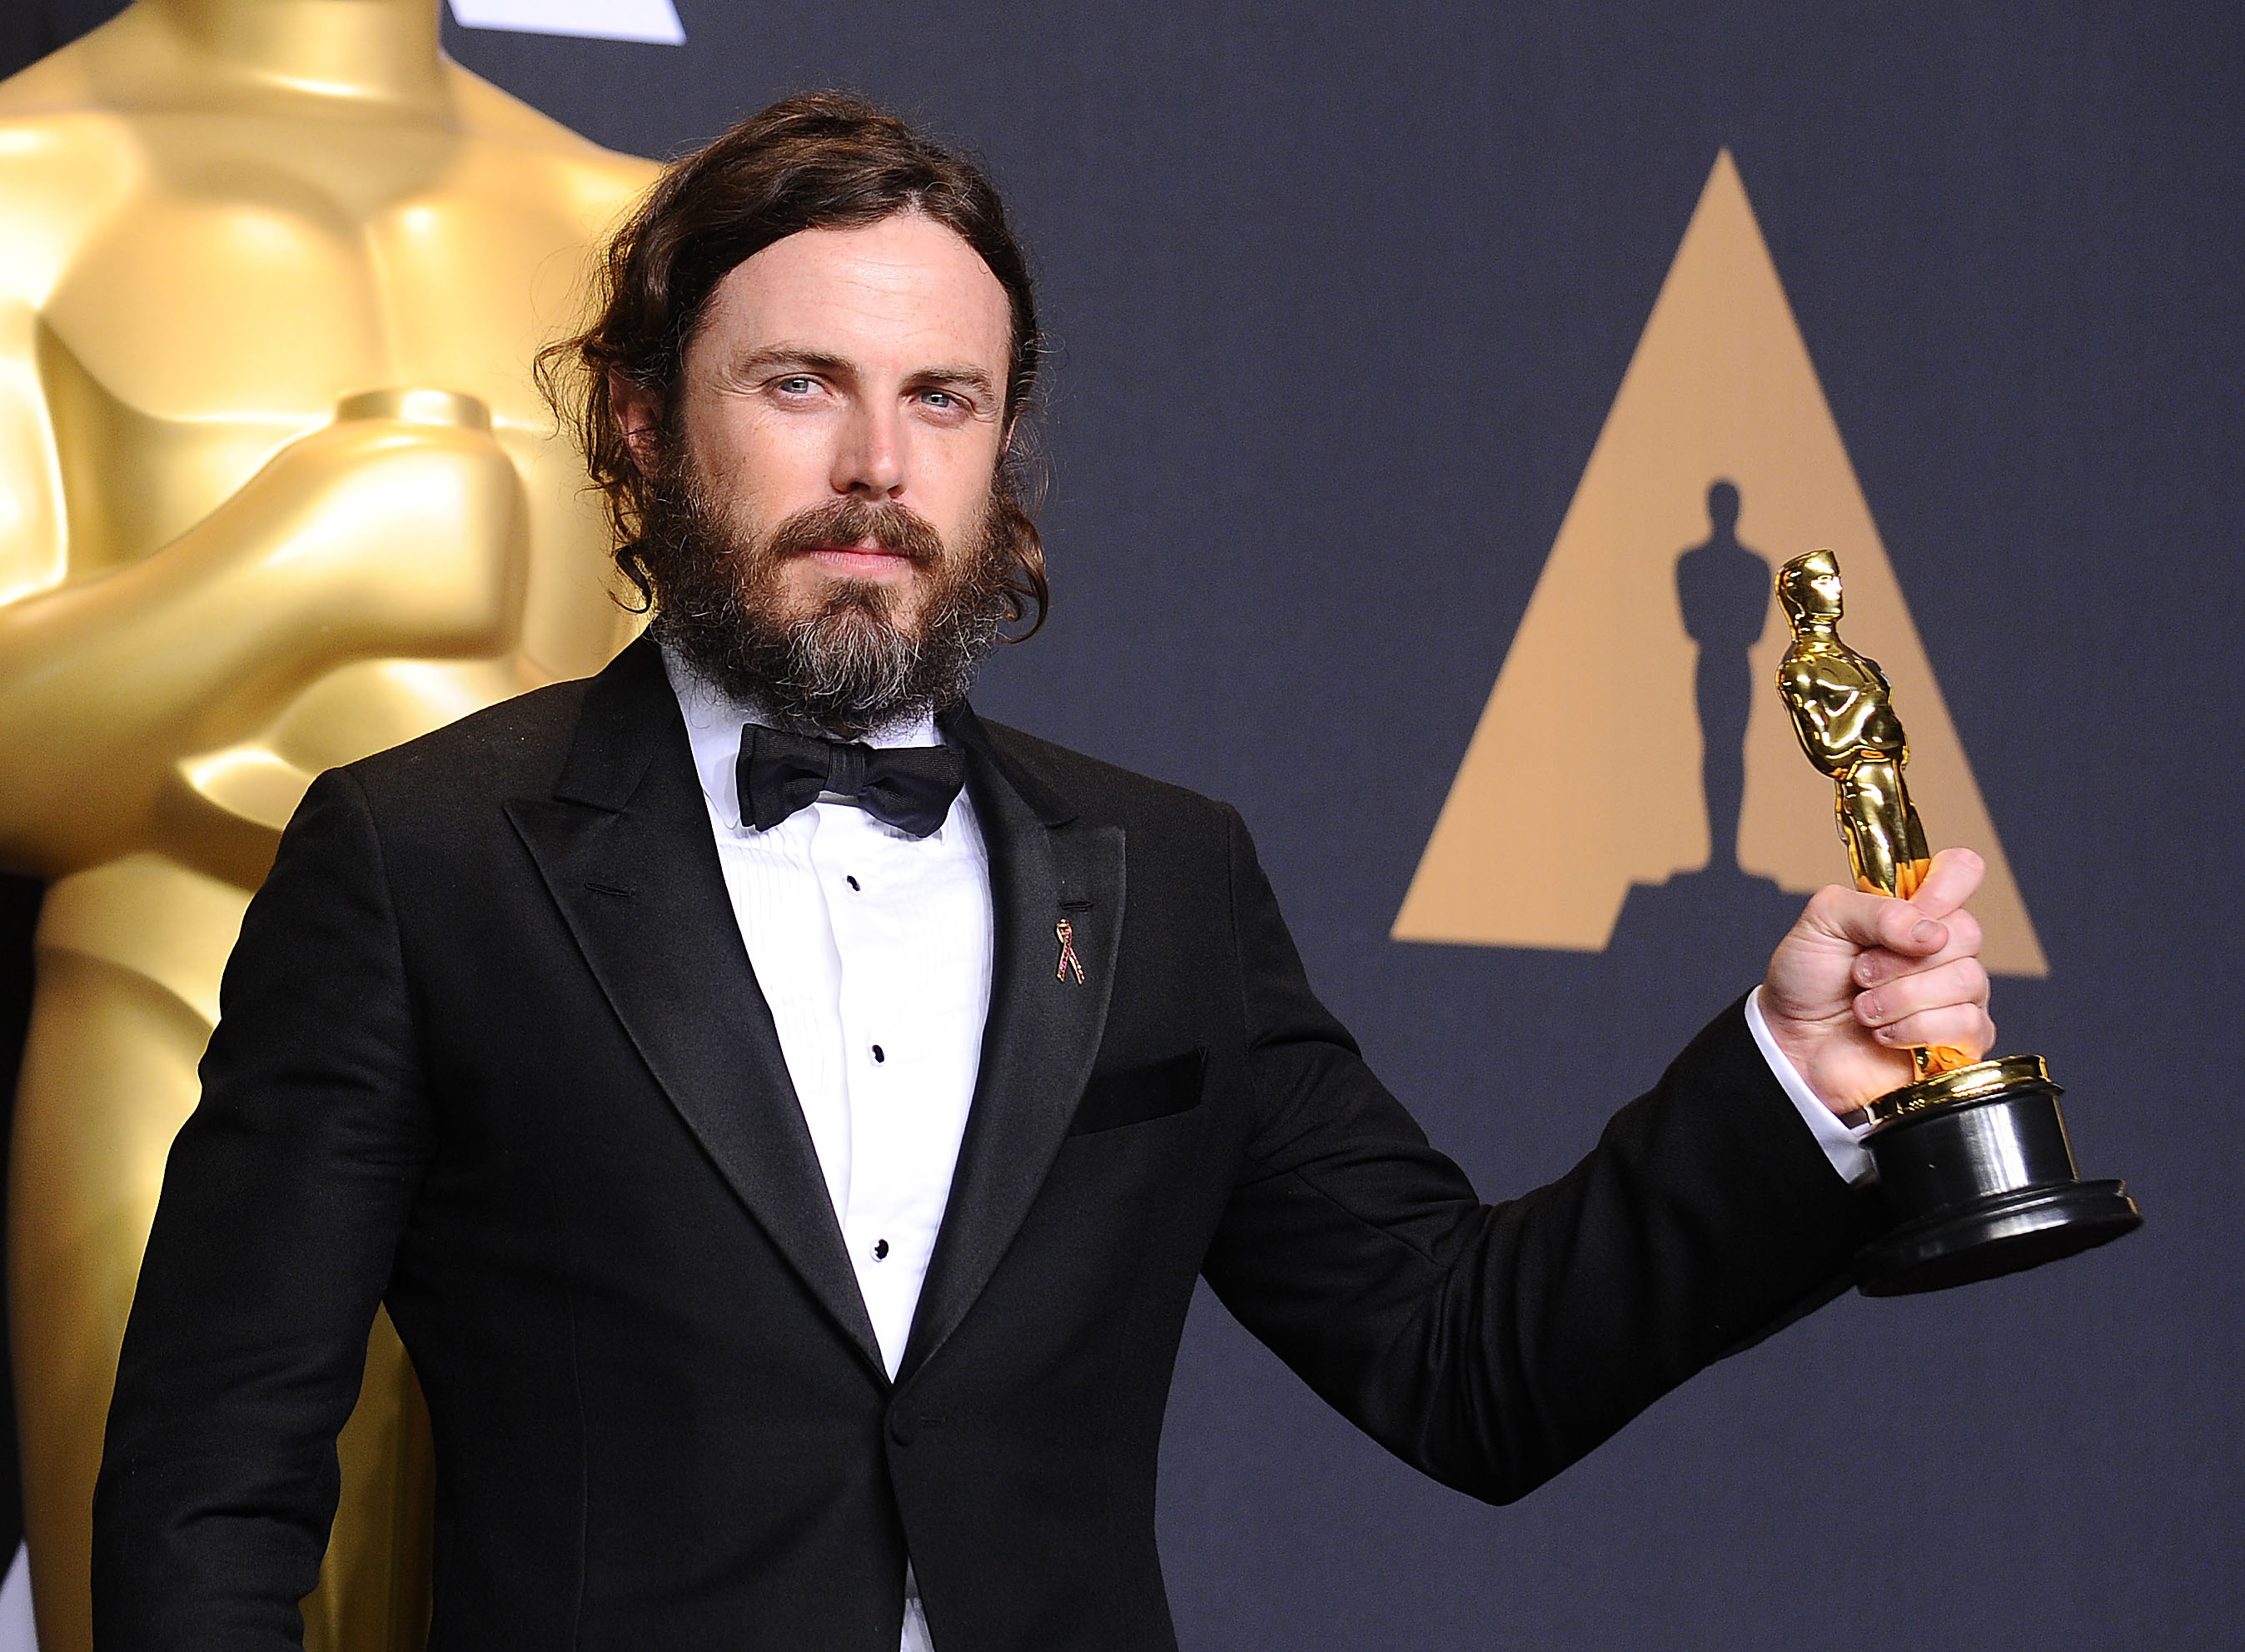 Casey Affleck has spoken out about those sexual assault allegations